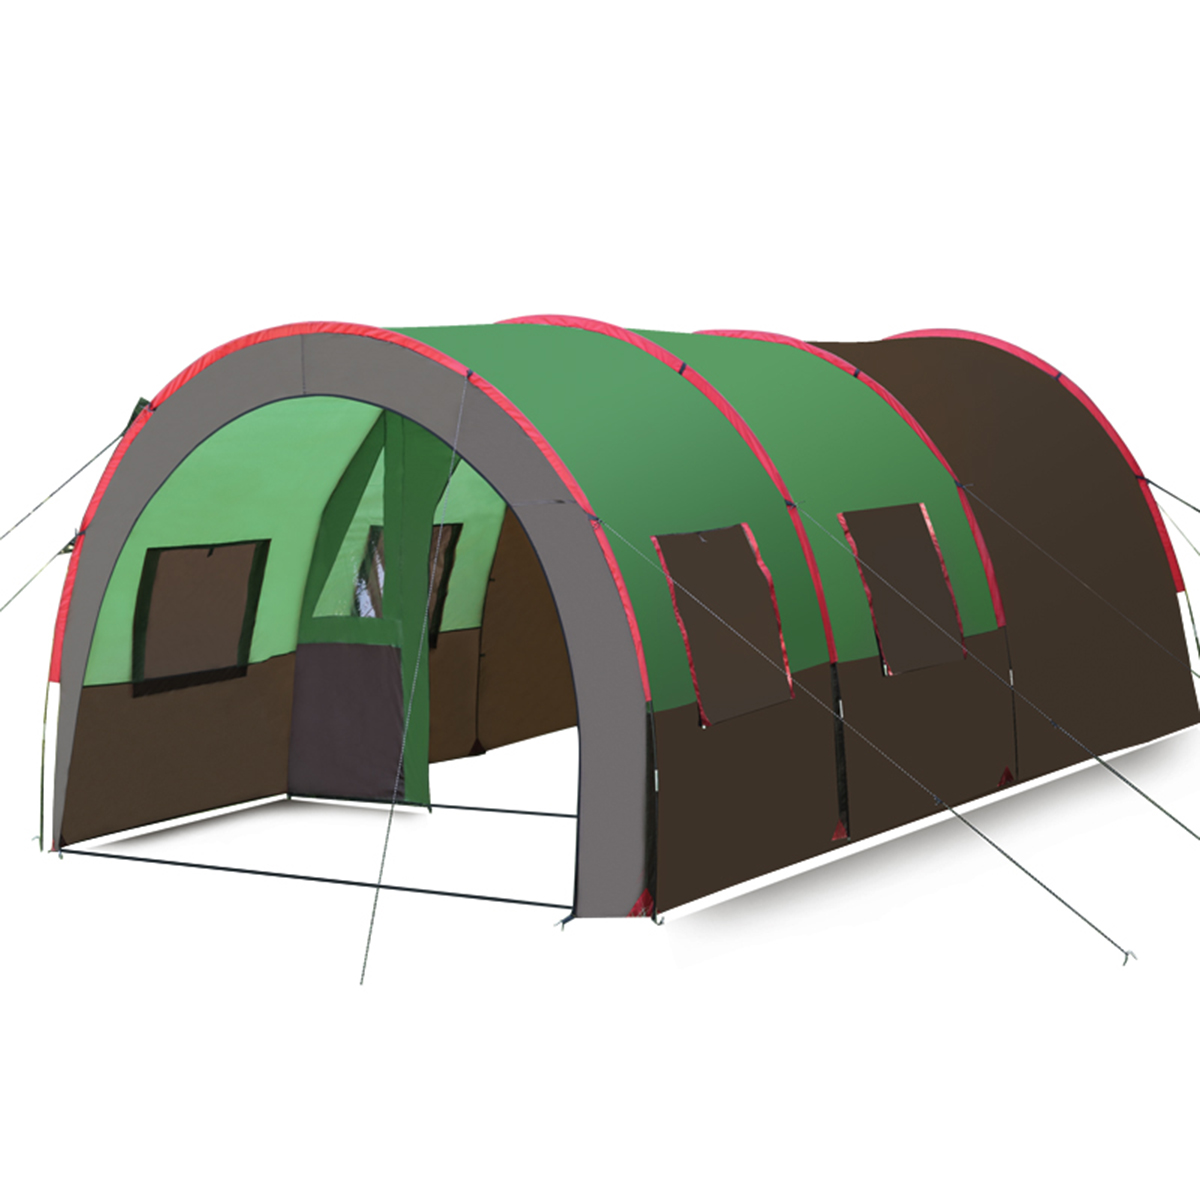 Outdoor Tents 8-10 Person One Room Two Hall Large Camping Waterproof Family Tent Fully Sun Shelter Gazebo Party Camping Hiking in one person